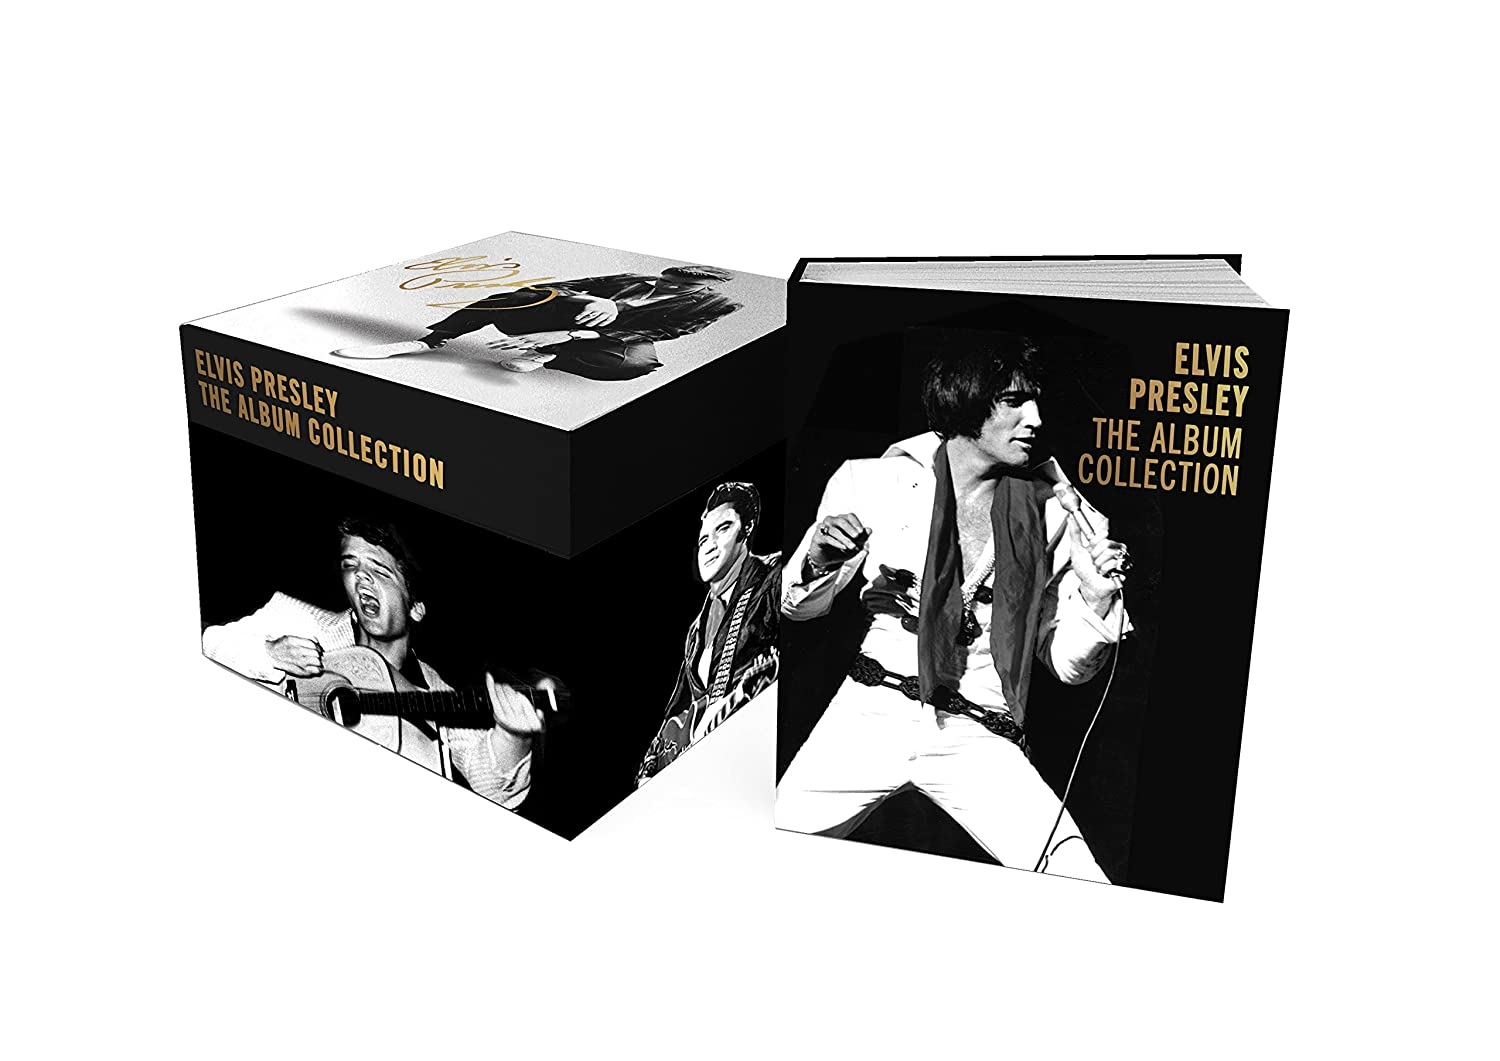 elvis presley 1956 2016 the album collection 60 cd deluxe box set